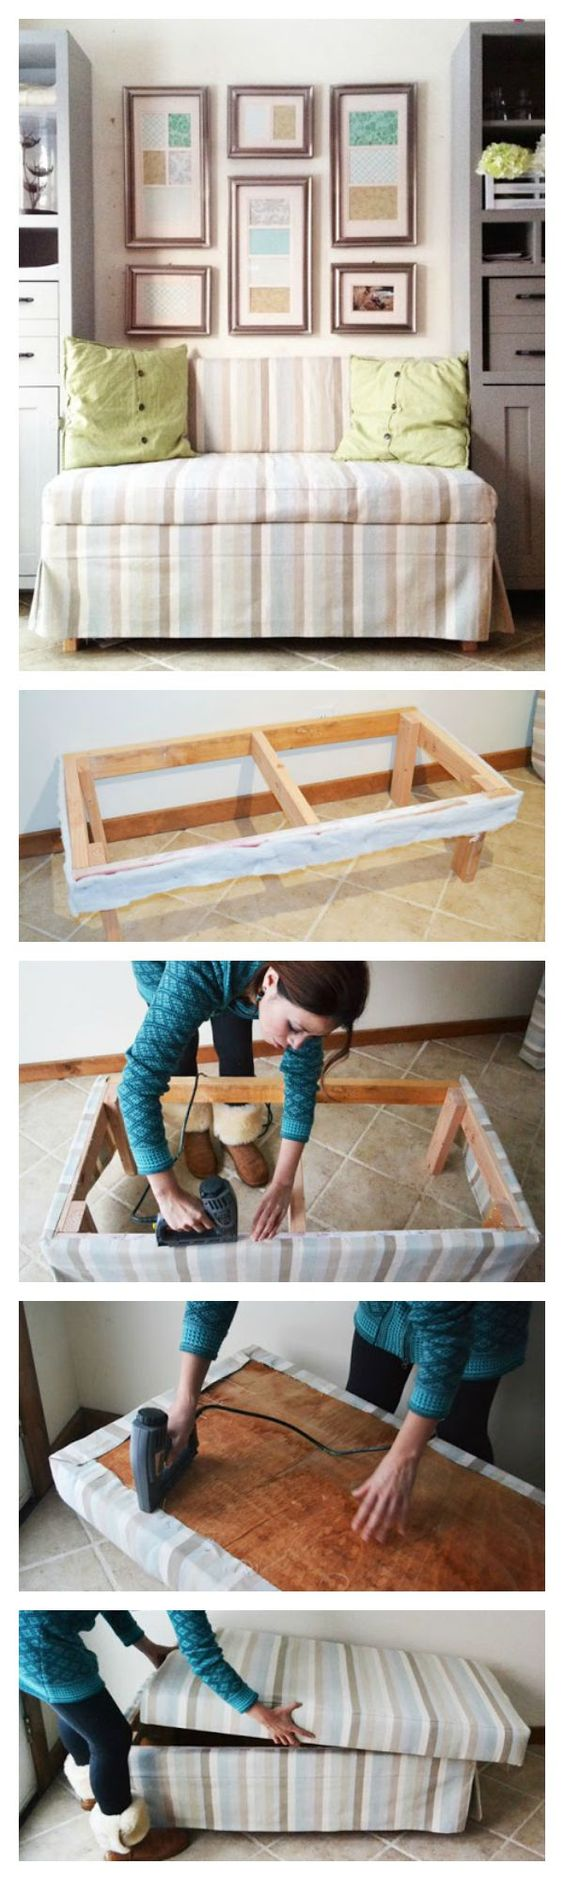 Ana White | Build a 2x4 Upholstered Banquette Seat | Free and Easy DIY Project and Furniture Plans: